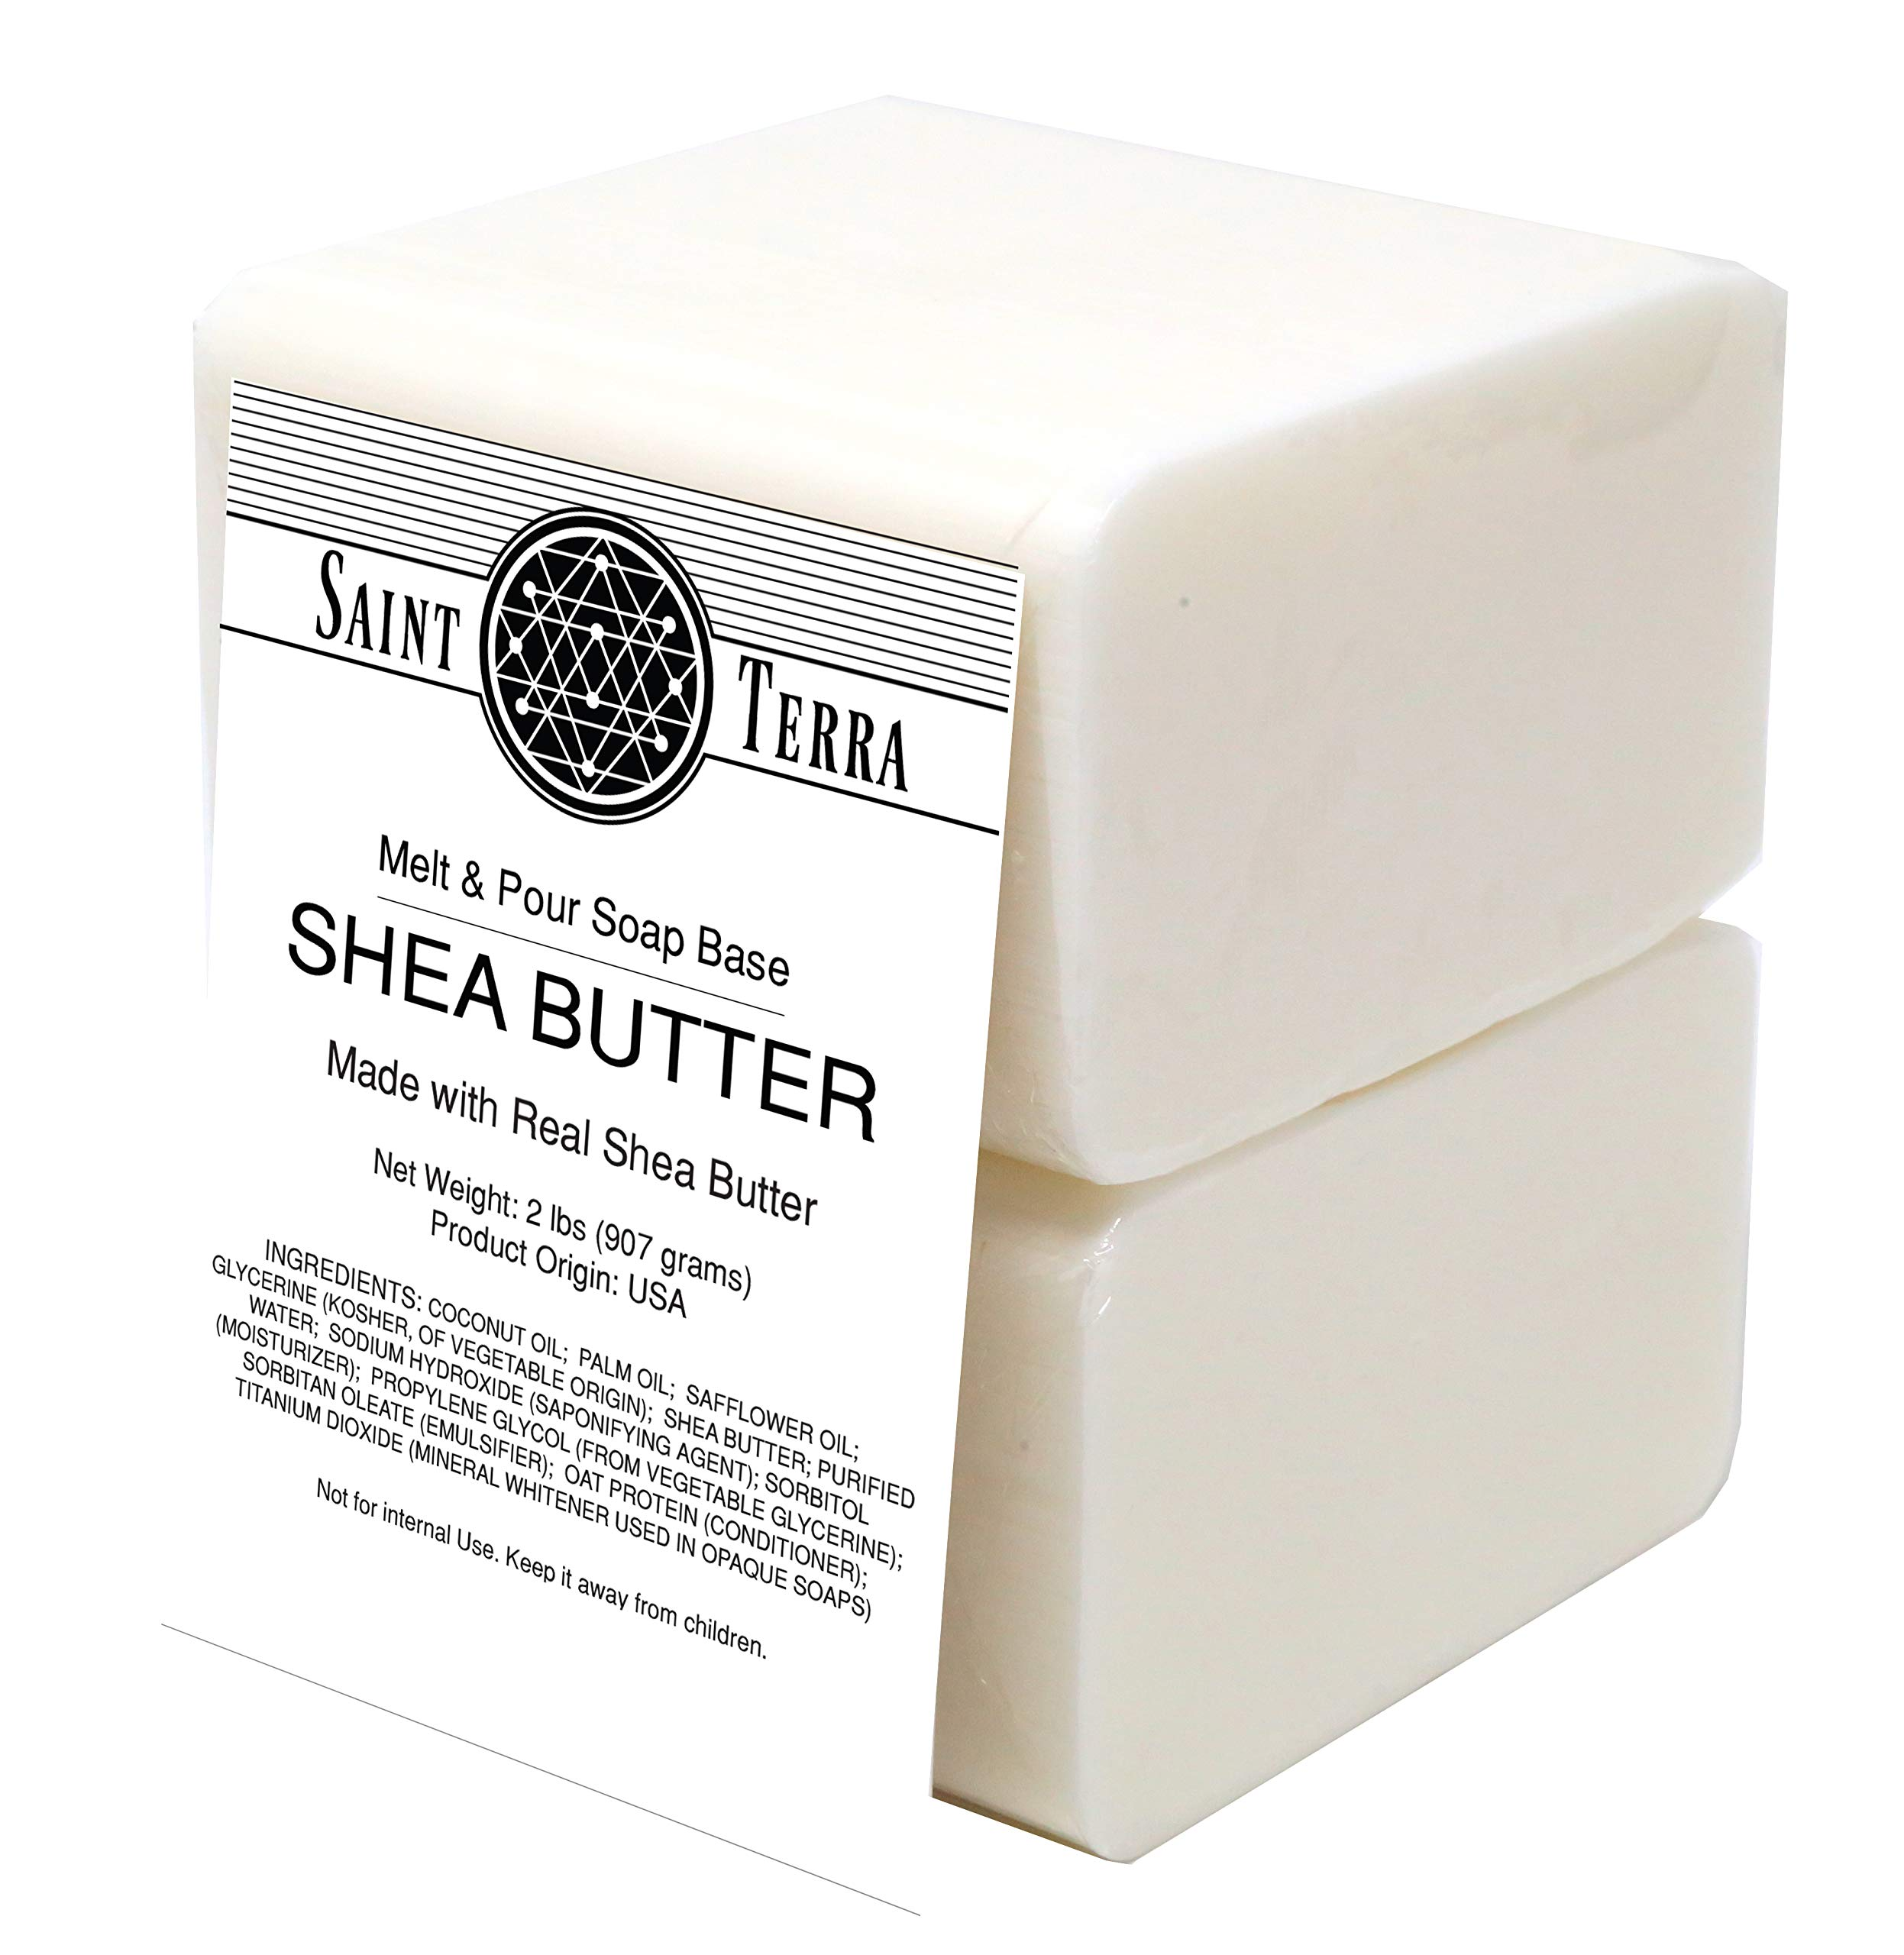 Saint Terra - Shea Butter Melt & Pour Soap Base, 2 Pounds